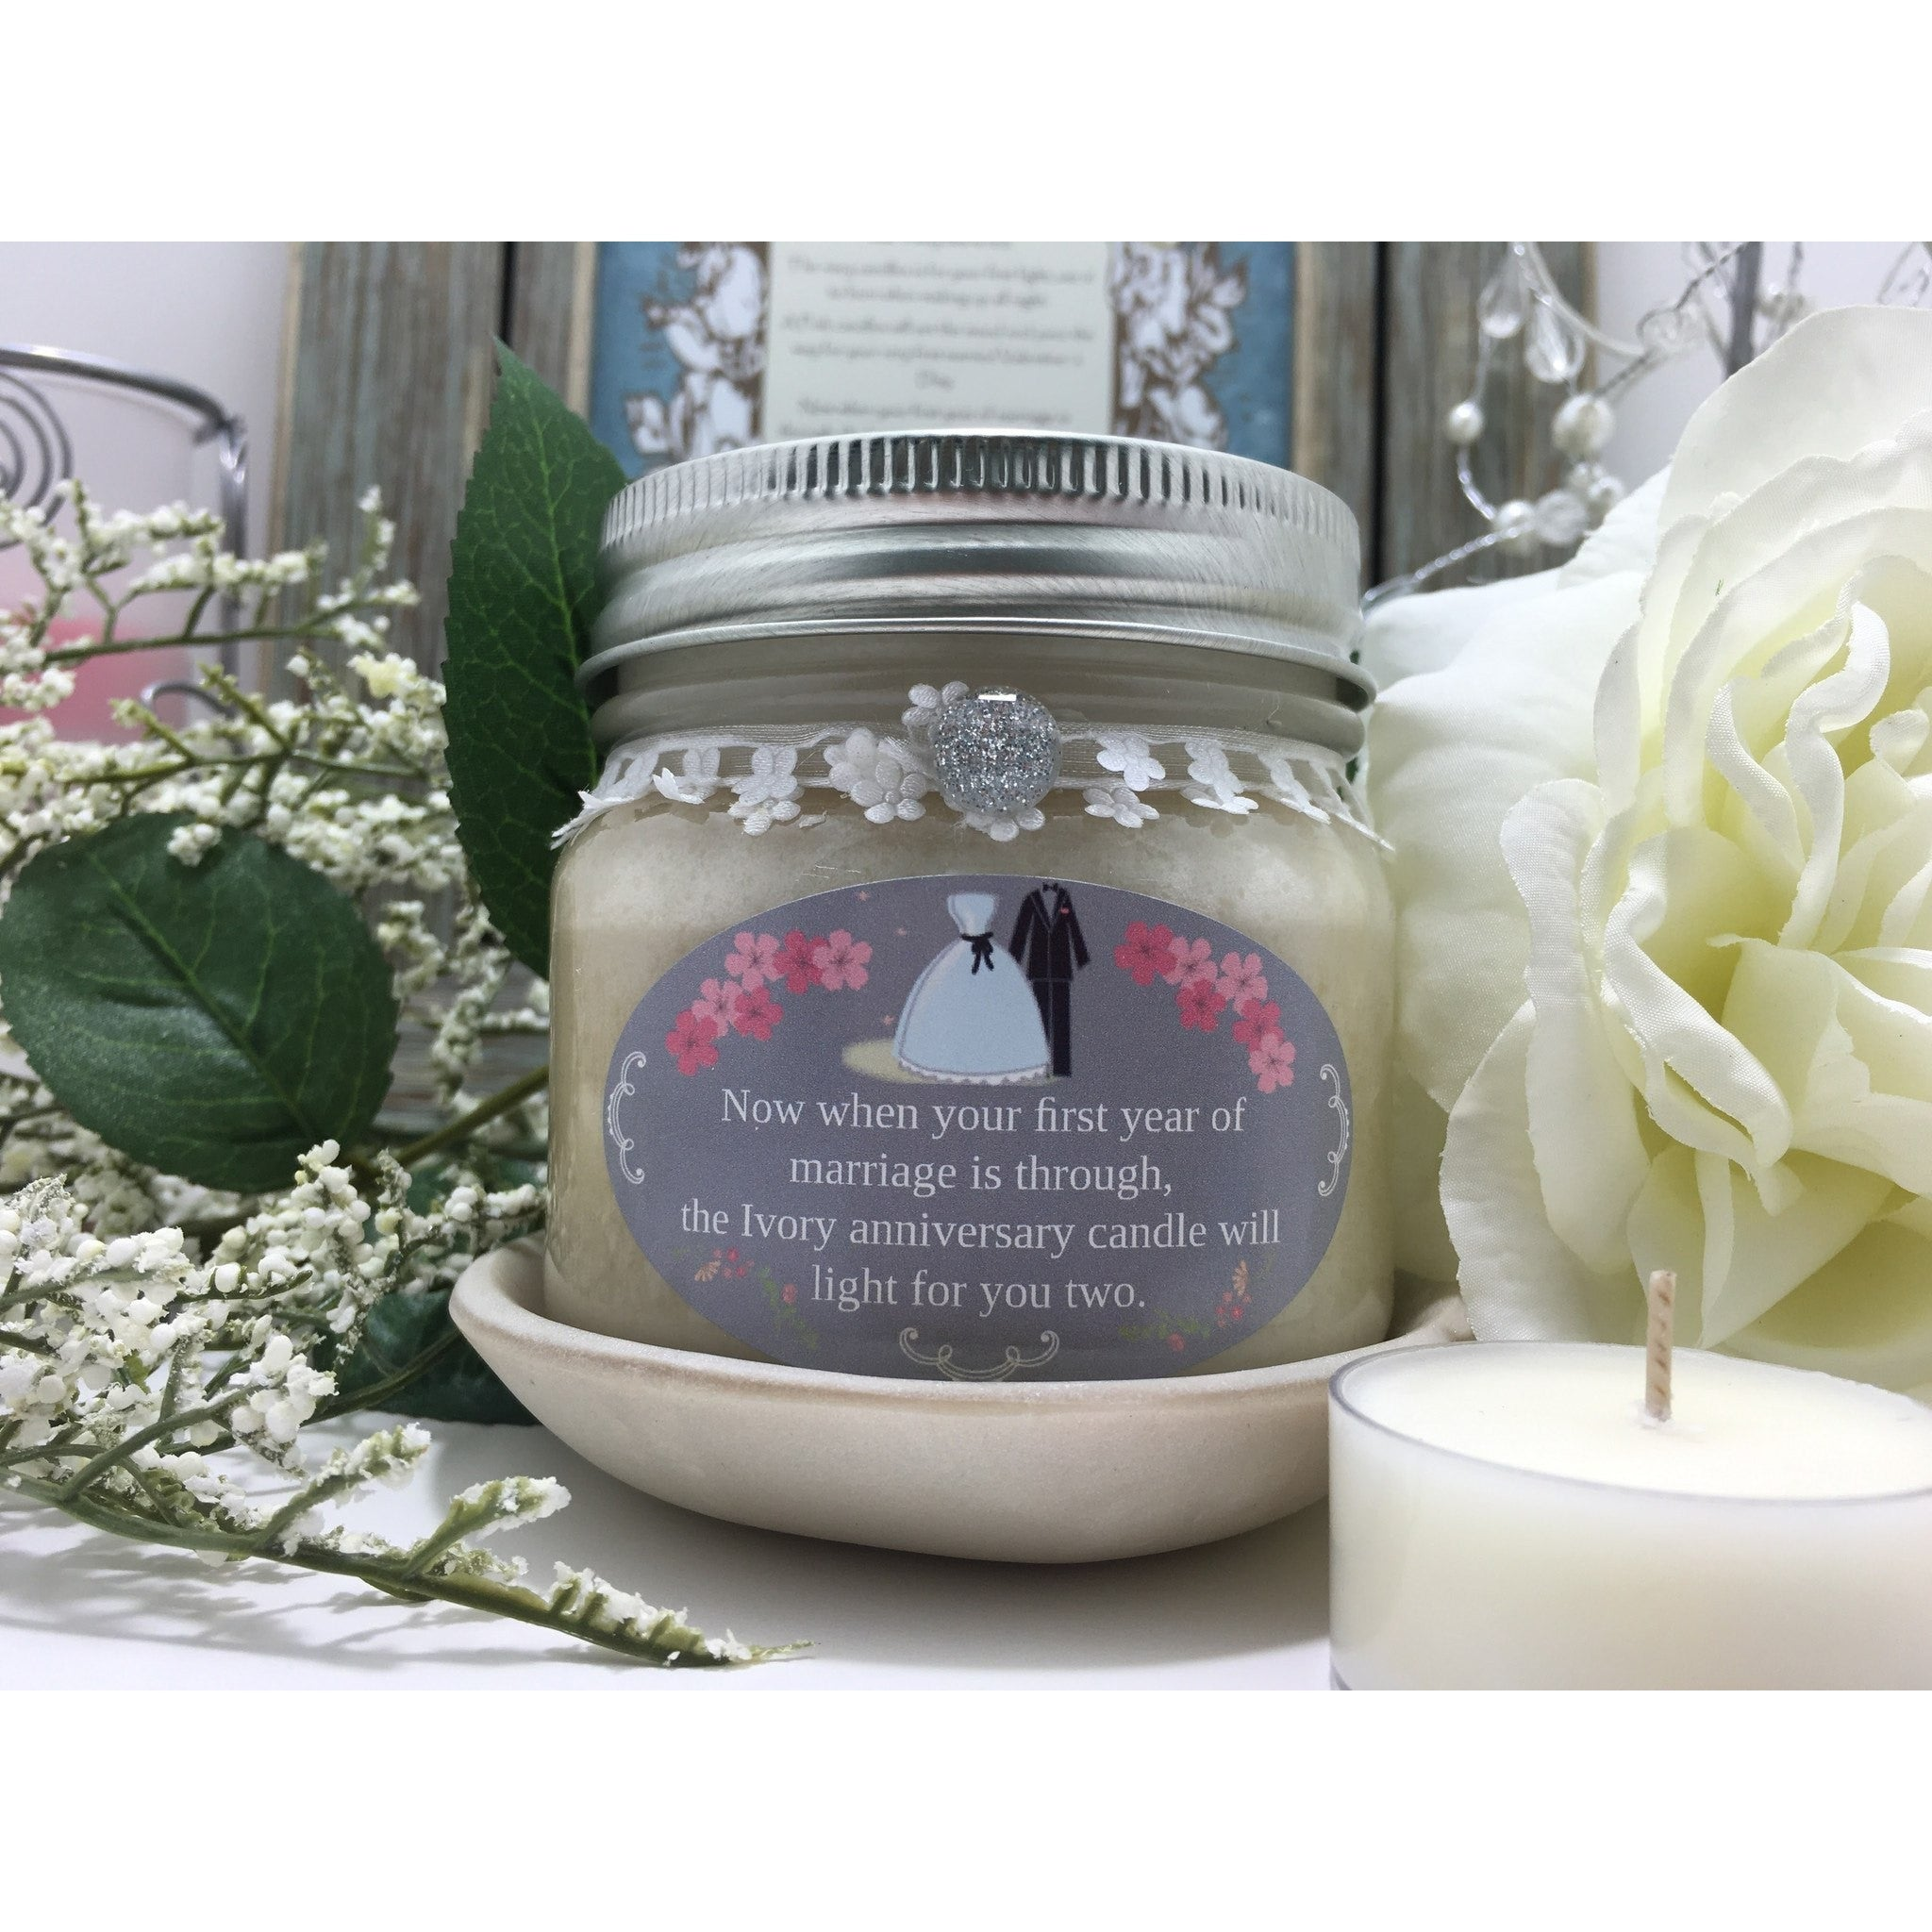 Wedding & Shower Party Natural Hand Poured Soy Candles & Melts -  - Bella-Mia Naturals All Natural Soy Candles & Lip Balms - 20